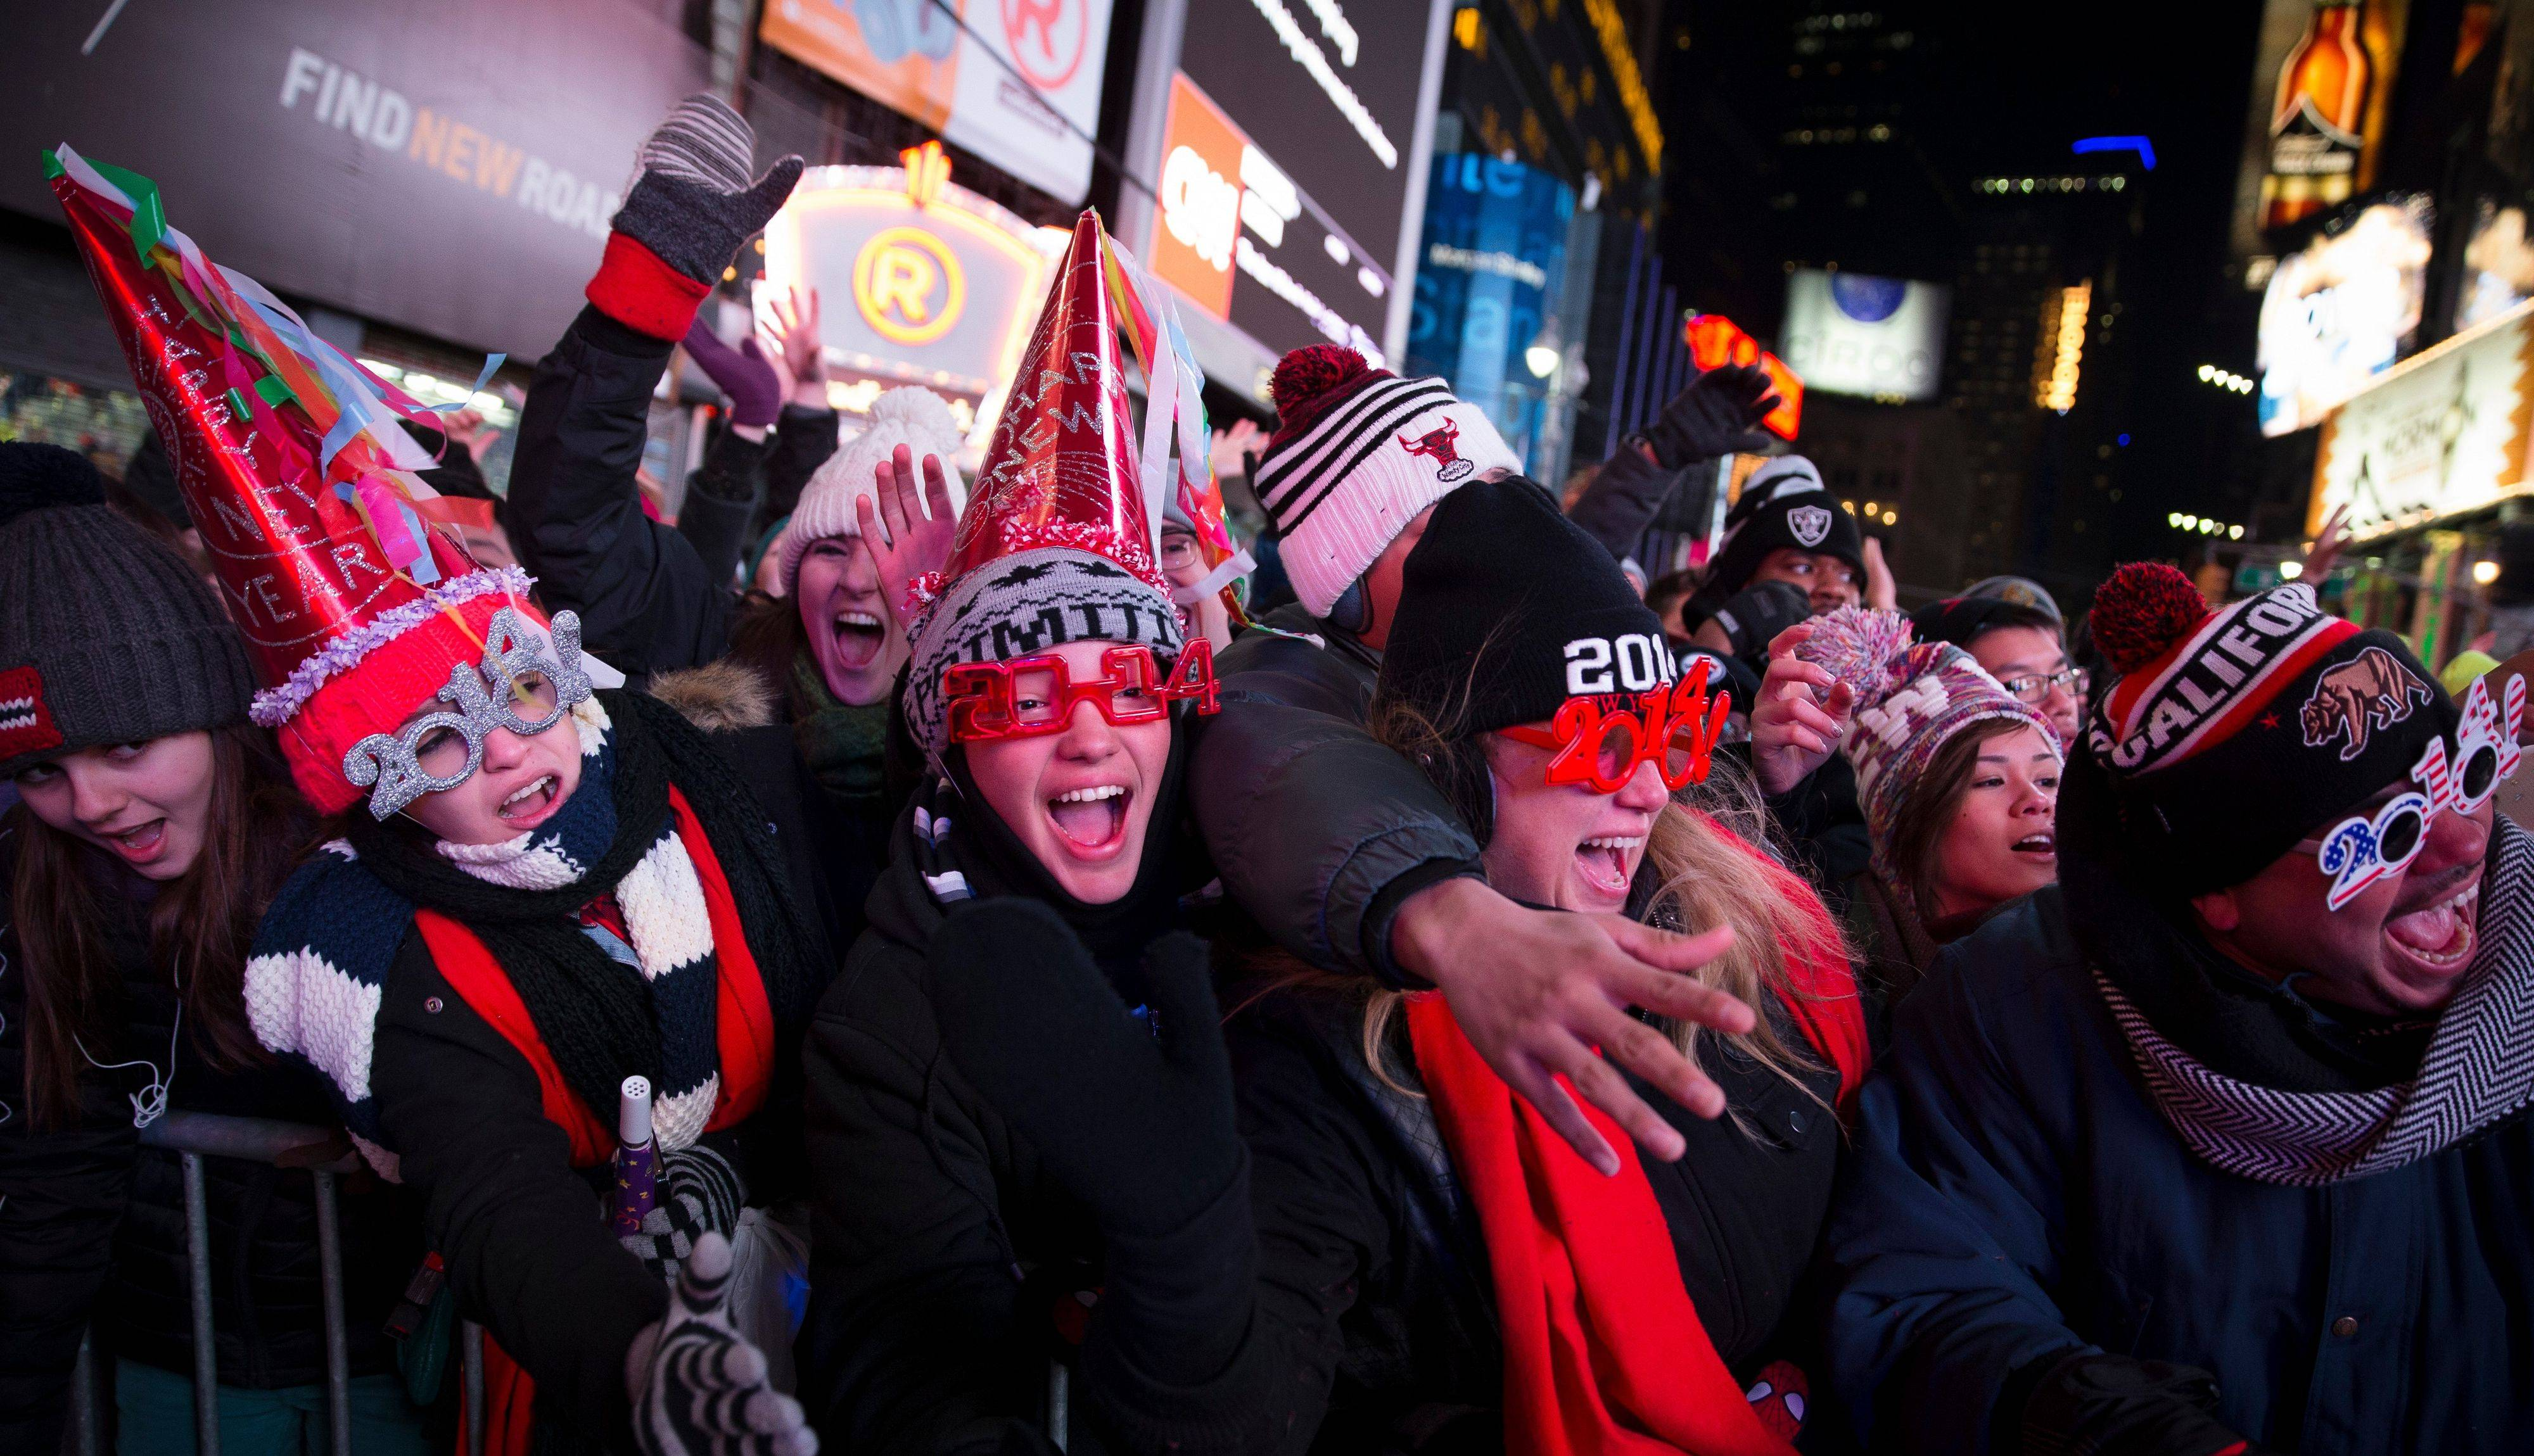 Revelers cheer as they wait for midnight during the New Year's Eve celebrations in Times Square, Tuesday.